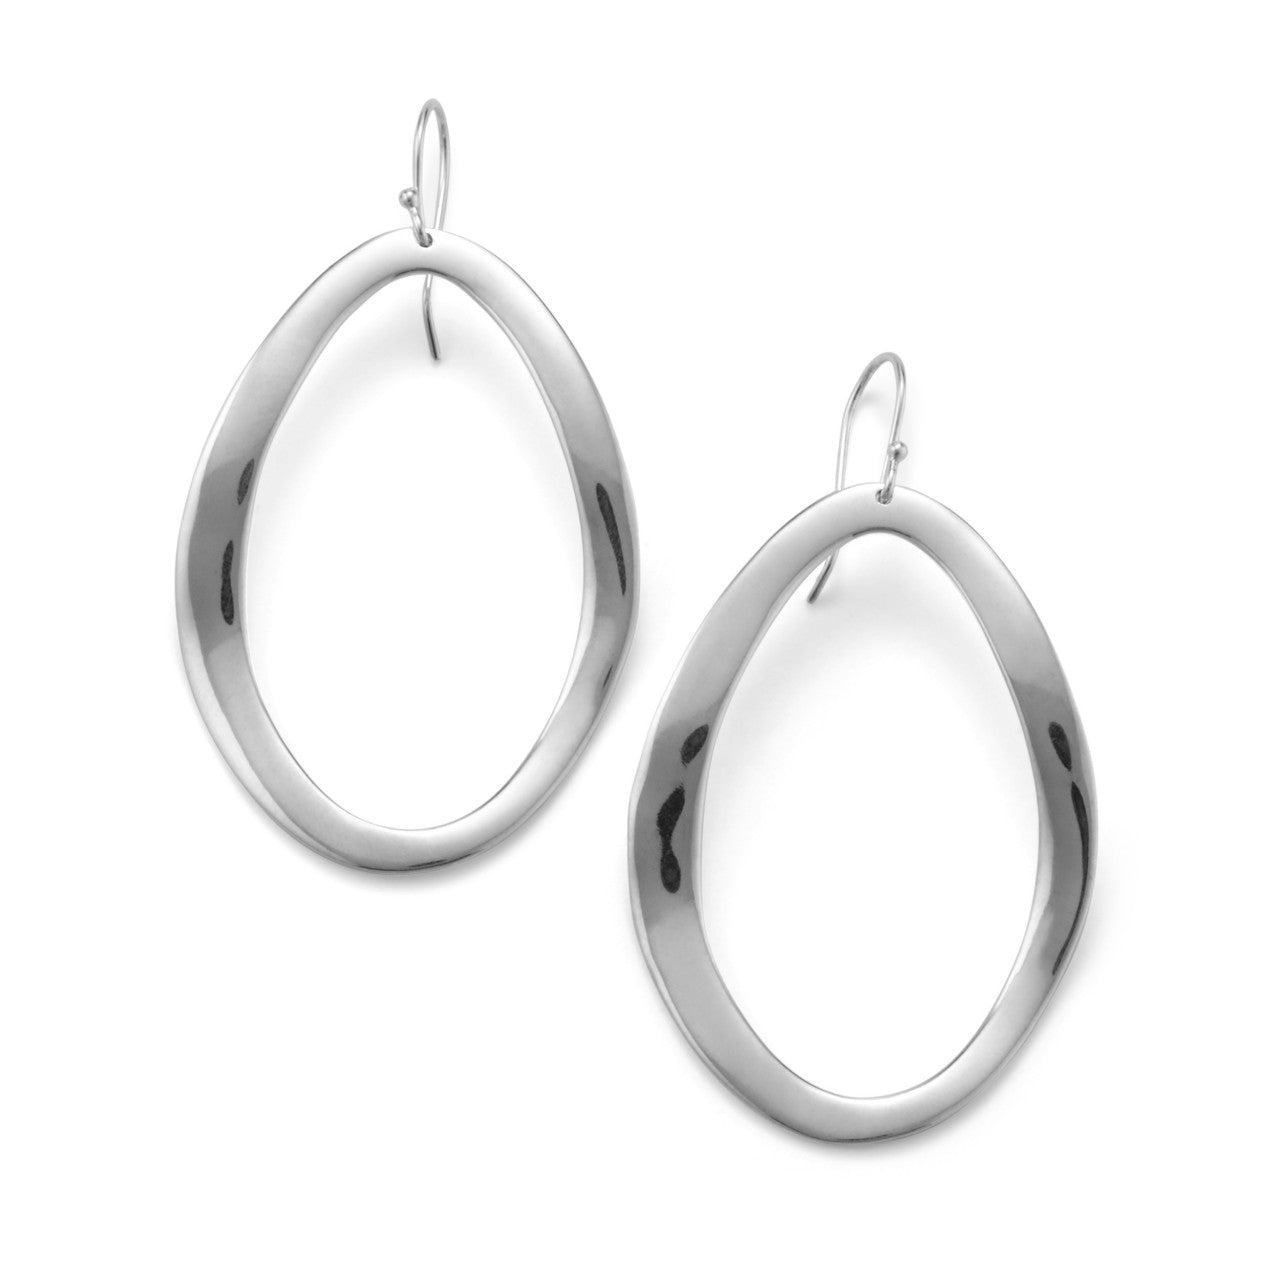 IPPOLITA Classico Sterling Silver Wavy Open Oval Earrings